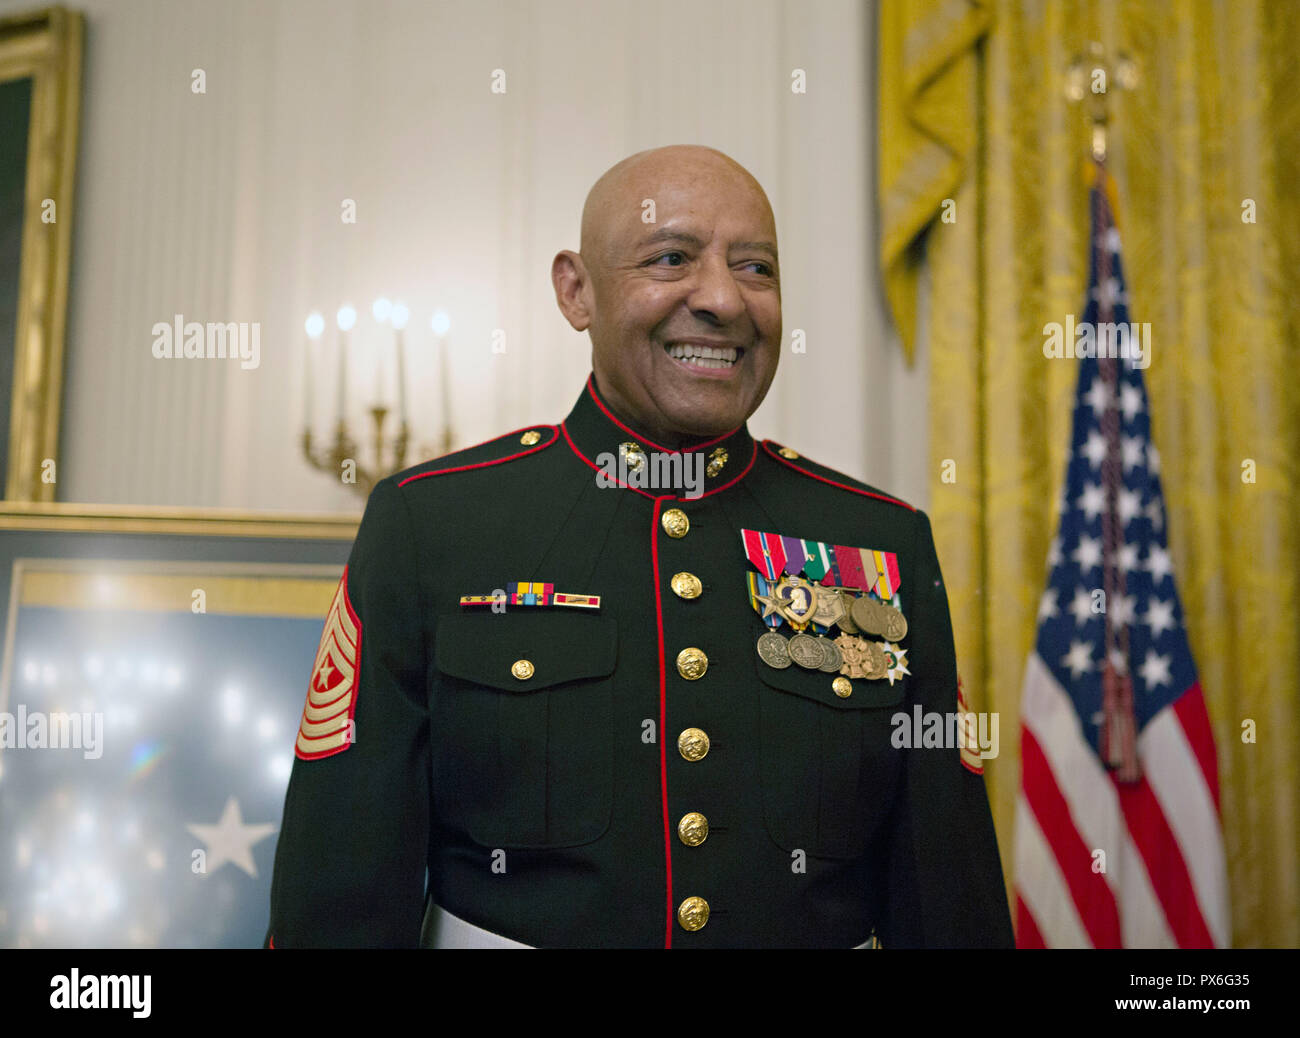 Medal of Honor recipient retired U.S. Marine Sgt. Maj. John Canley smiles during the presentation rehearsal in the East Room of the White House October 17, 2018 in Washington, DC. Canley received the nations highest honor for actions during the Battle of Hue in the Vietnam War. Stock Photo